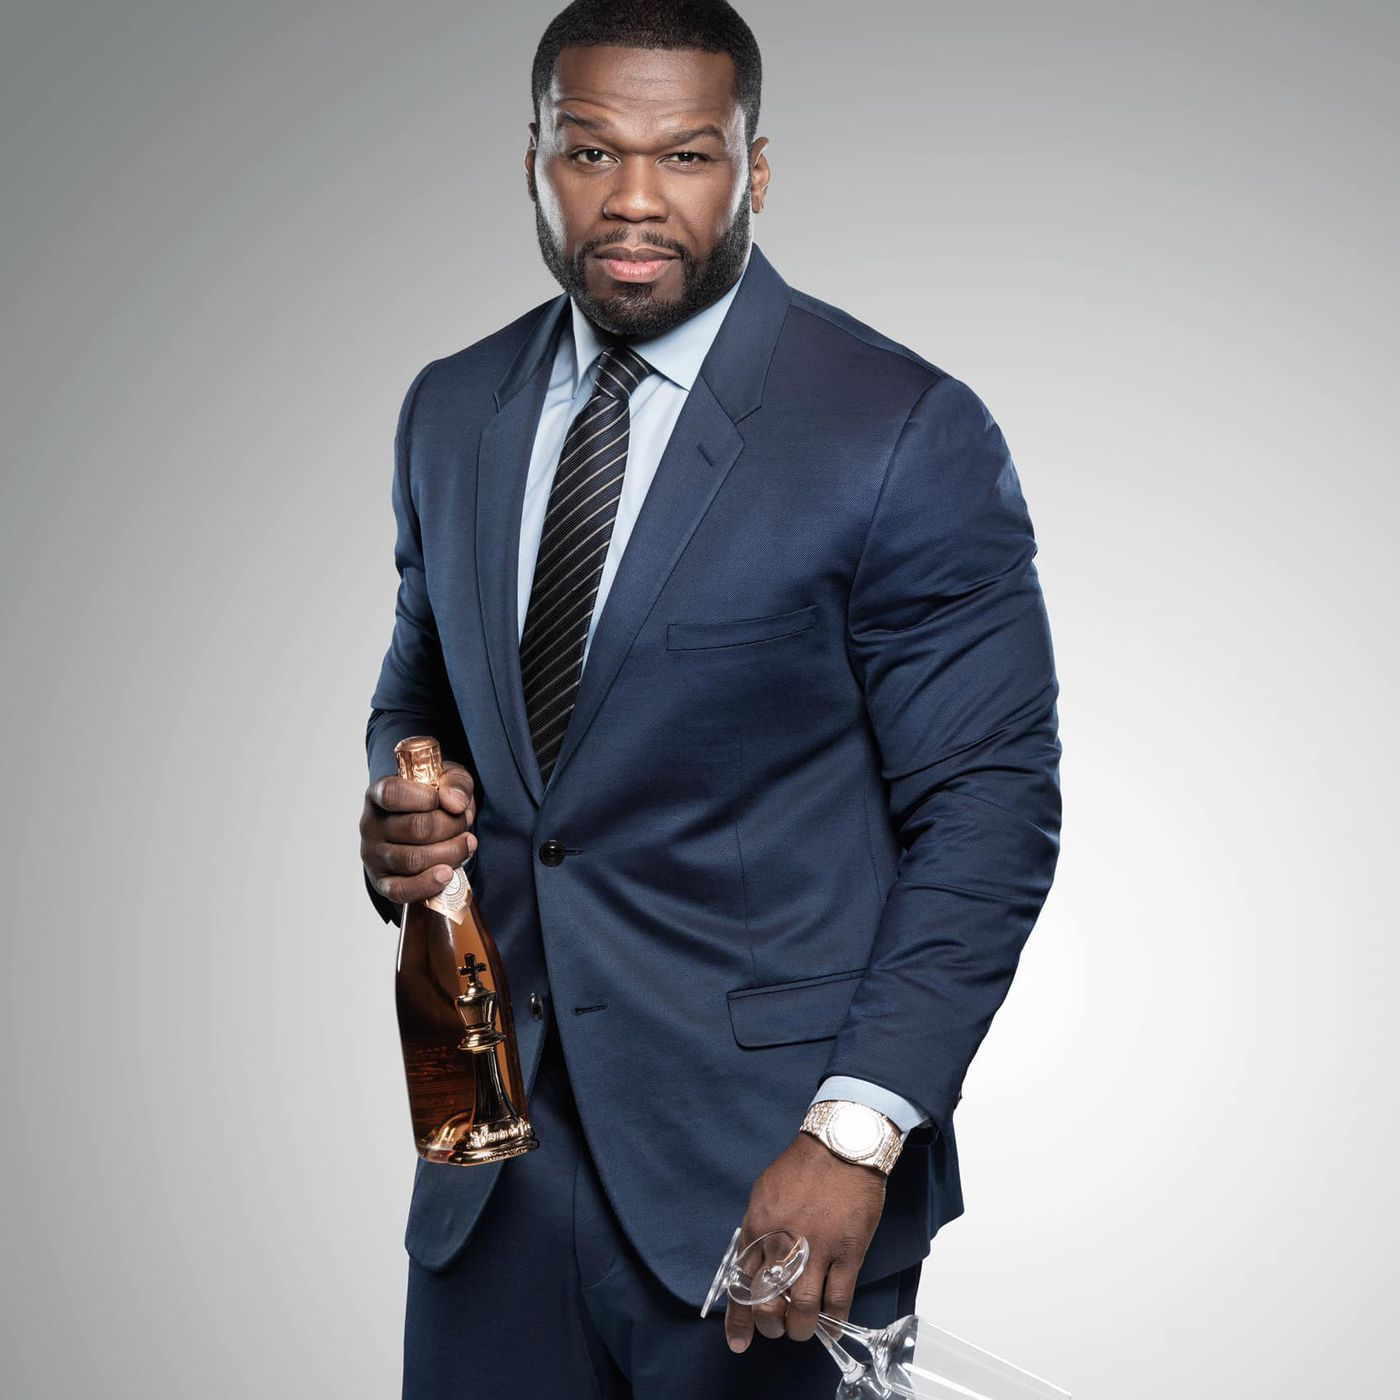 Rapper 50 Cent Will Host a Pricey, Cognac-Drenched Dinner in Dallas Next Month - Eater Dallas